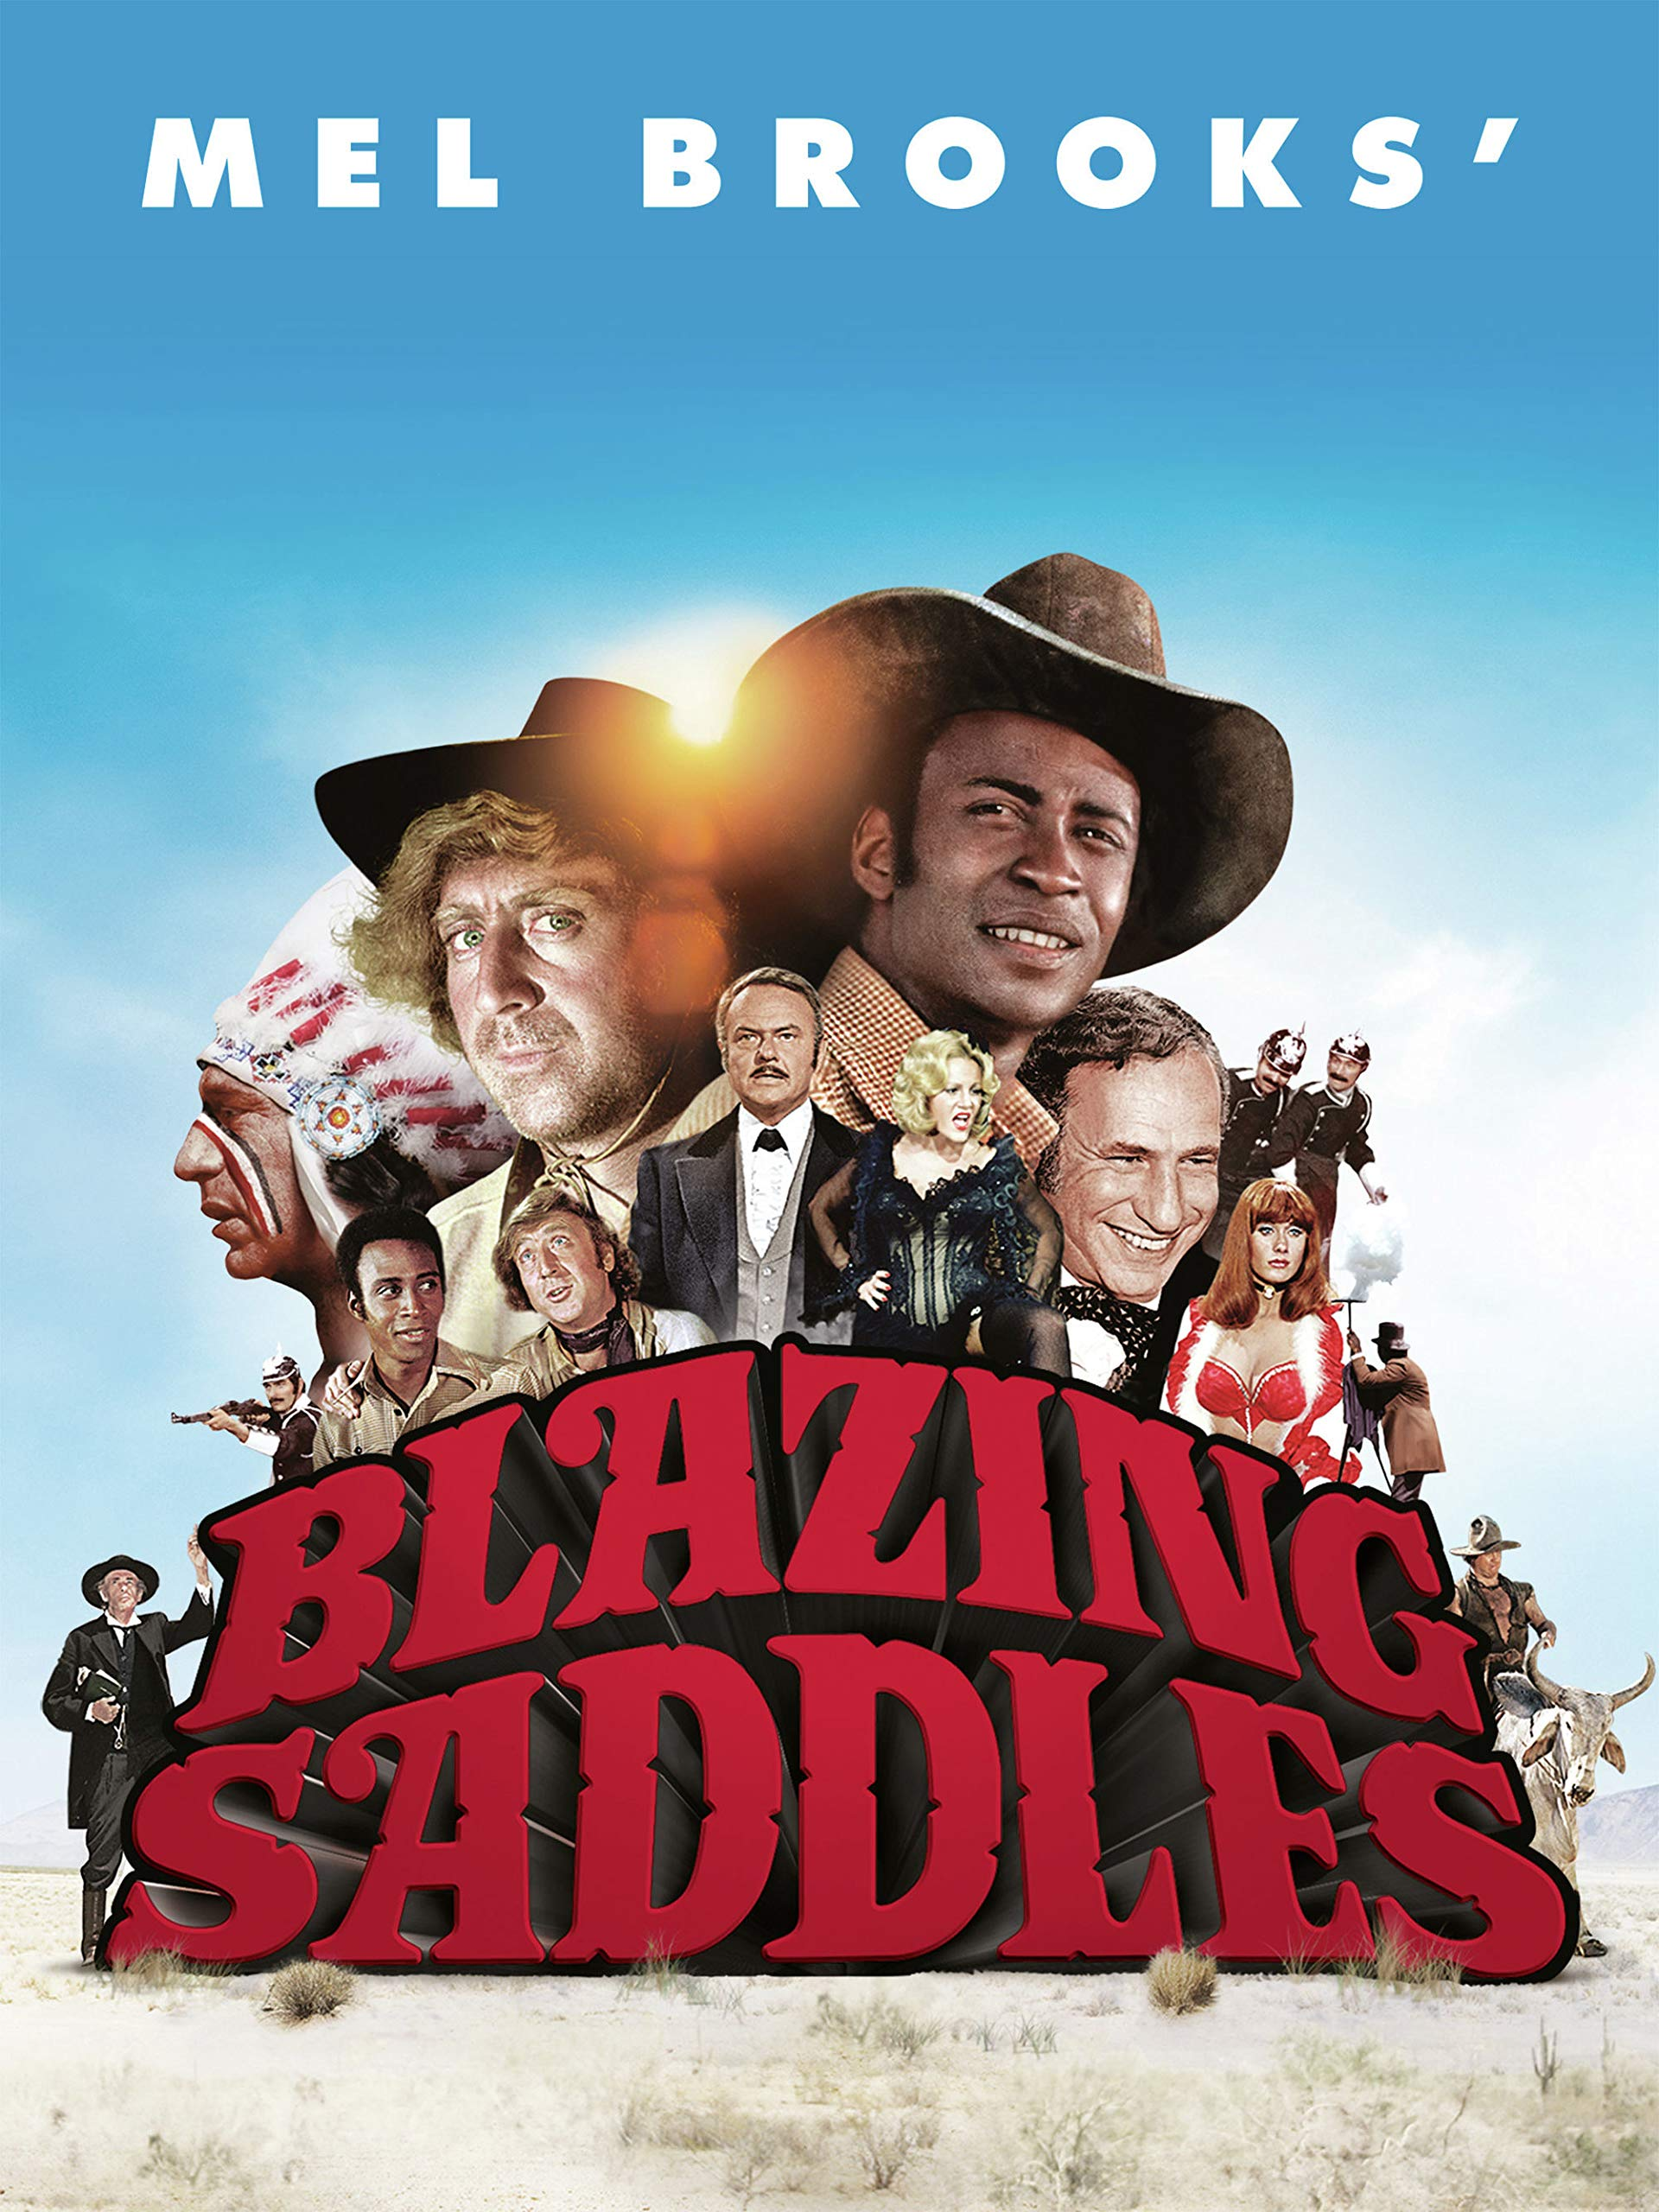 If Blazing Saddles Was About Fernandina Beach It Would Have Been Considered A Documentary